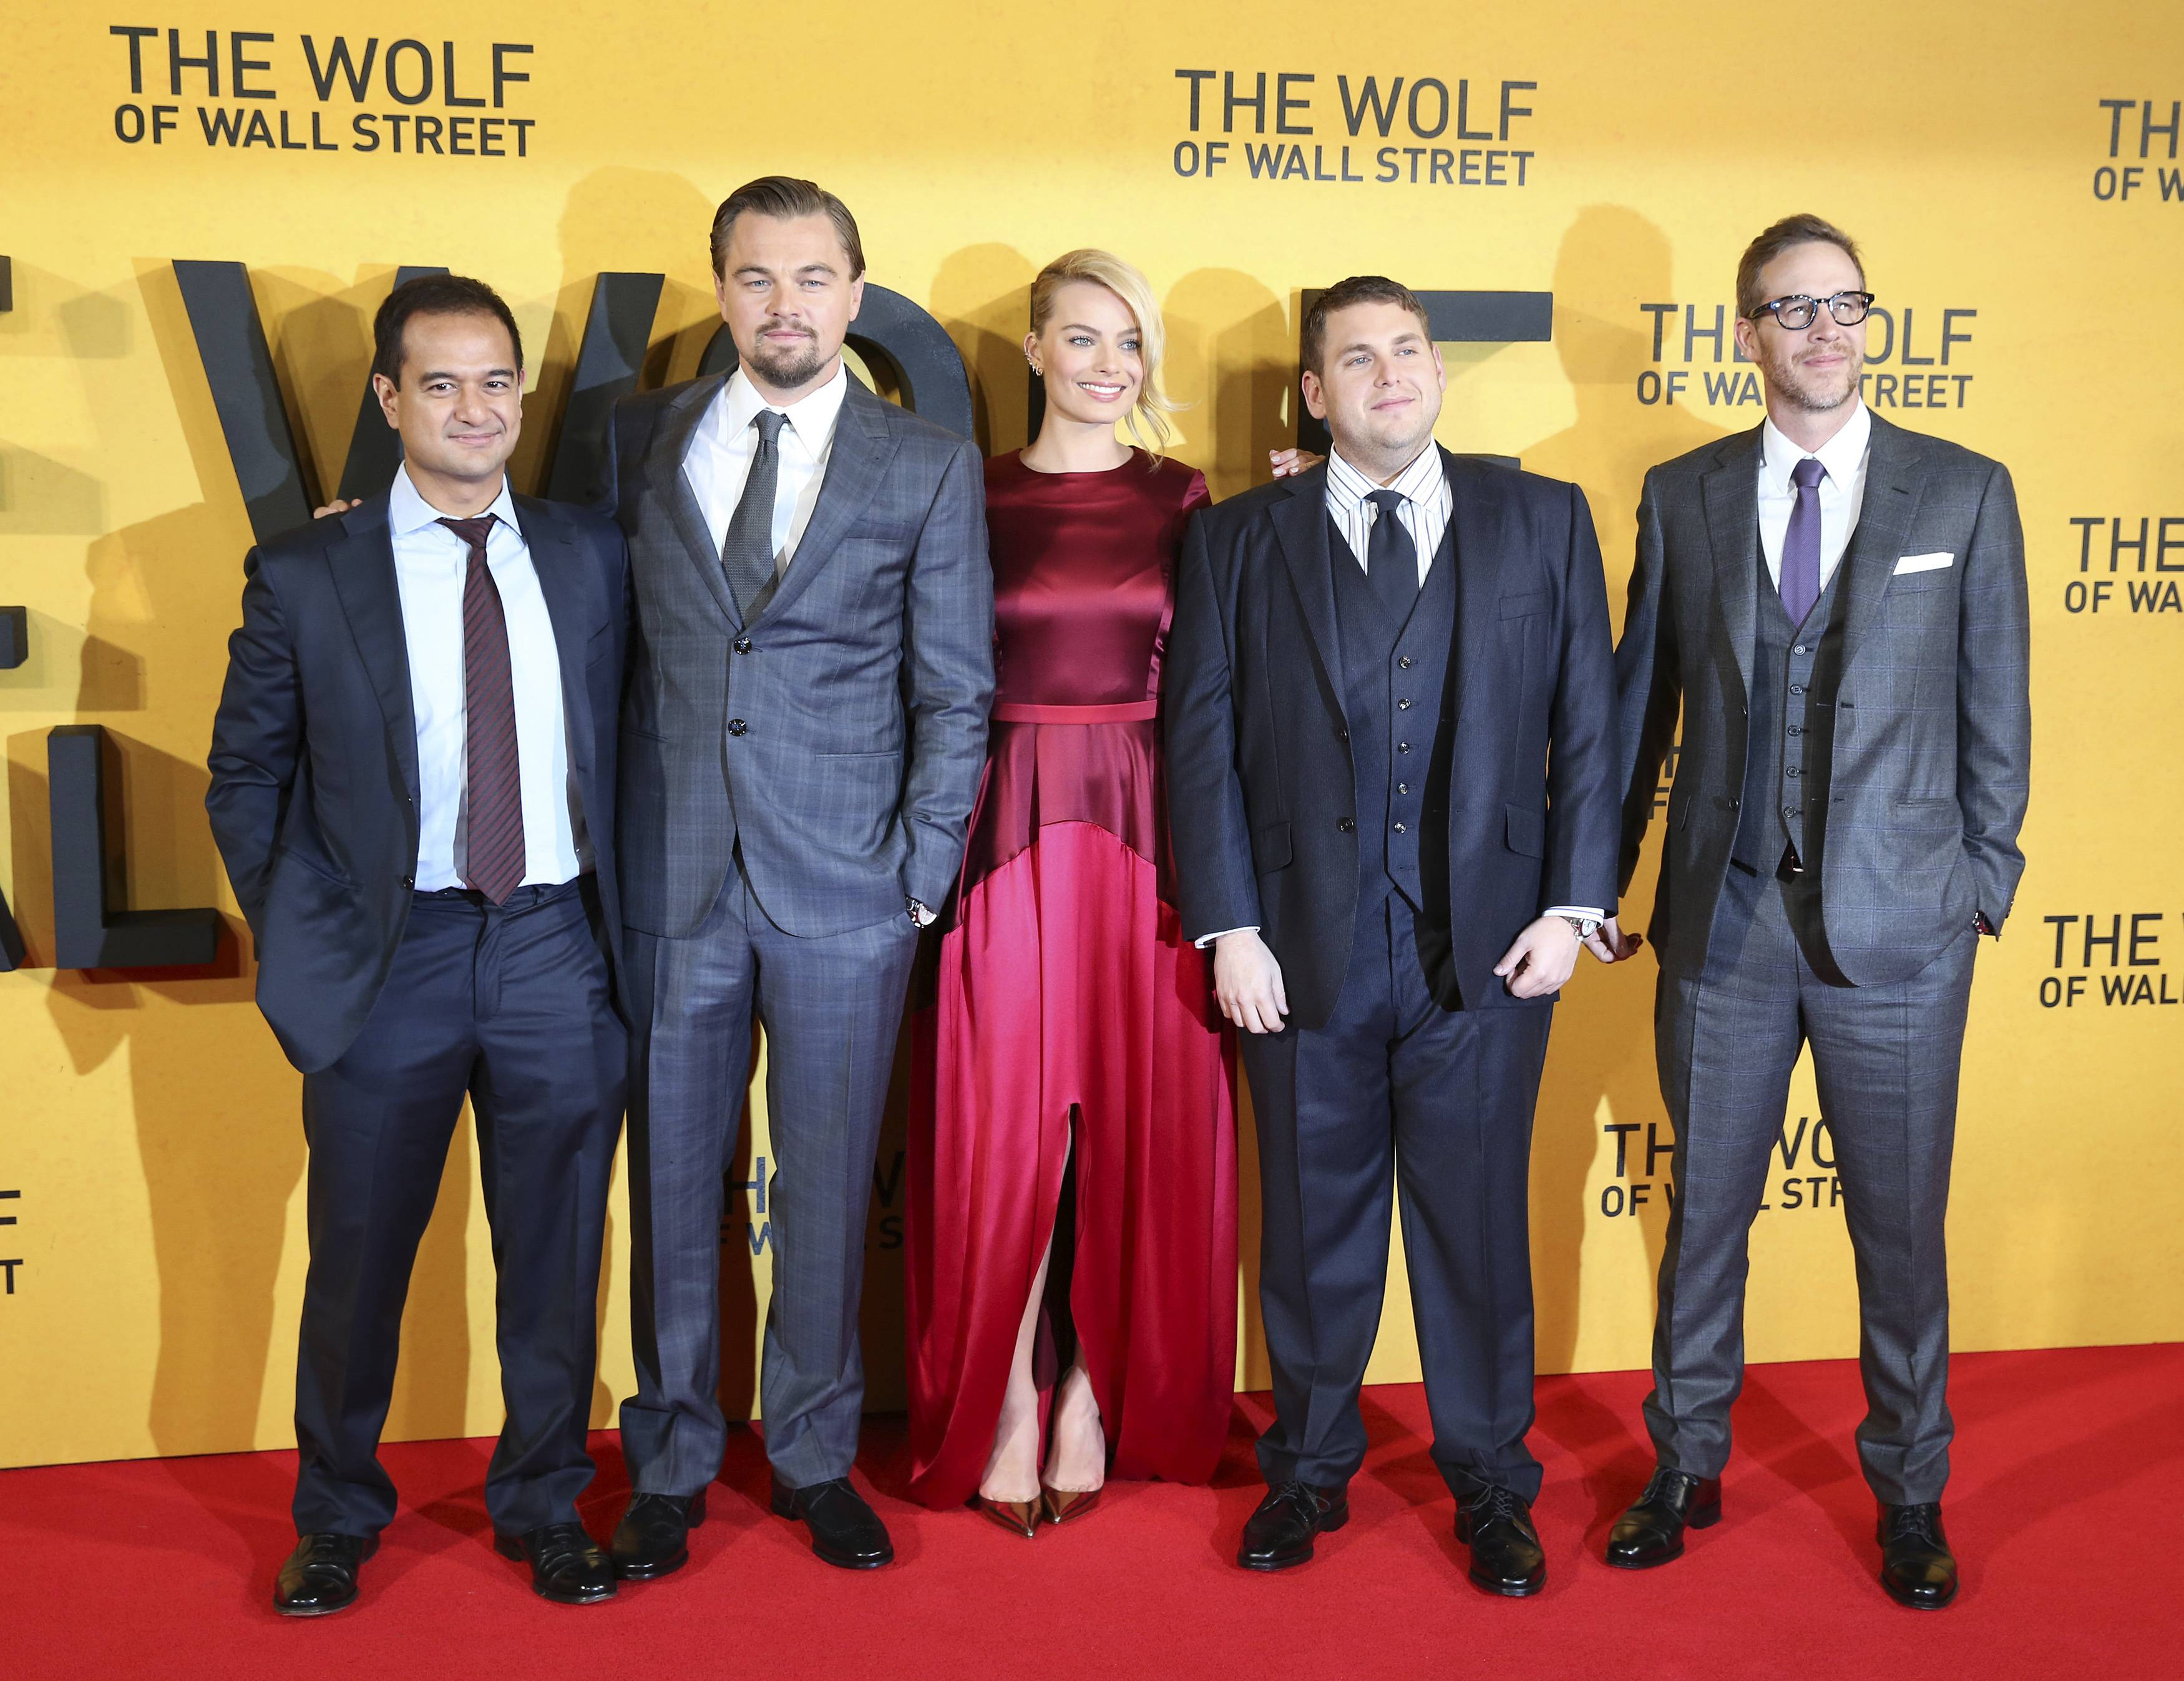 (From left) Producer Riza Aziz and cast members Leonardo DiCaprio, Margot Robbie, Jonah Hill and producer Joey McFarland arrive for the UK premiere of The Wolf of Wall Street at Leicester Square, in London last week. – Reuters pic, January 14, 2014.